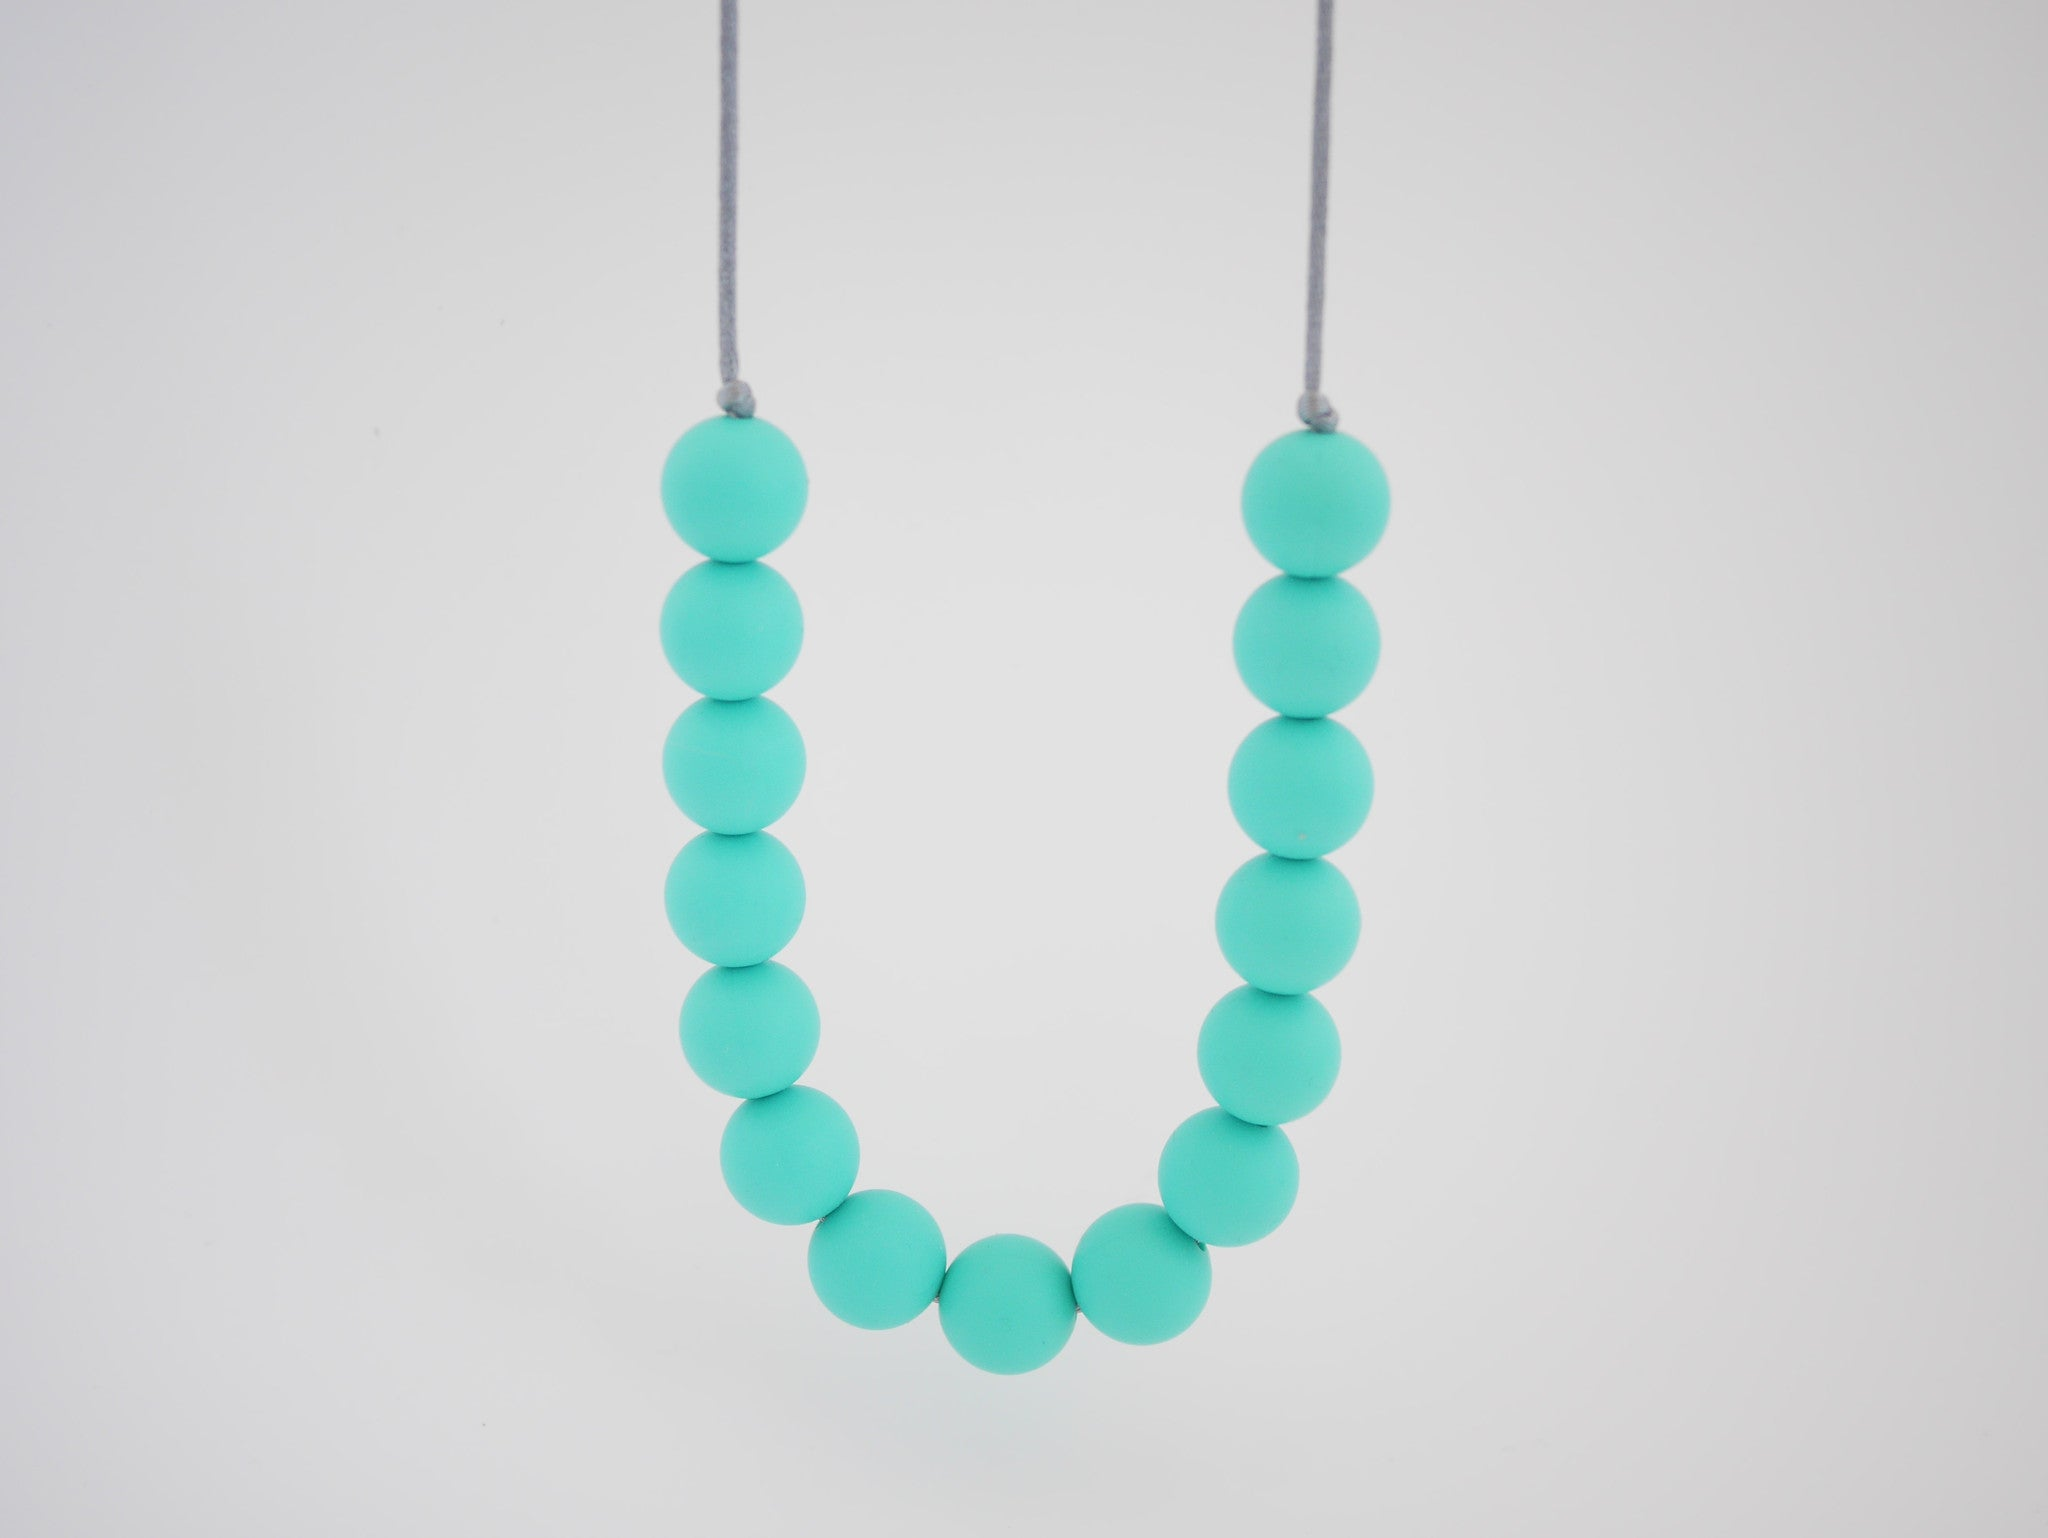 Indi & Frey Mini Gumball Necklace - Teal